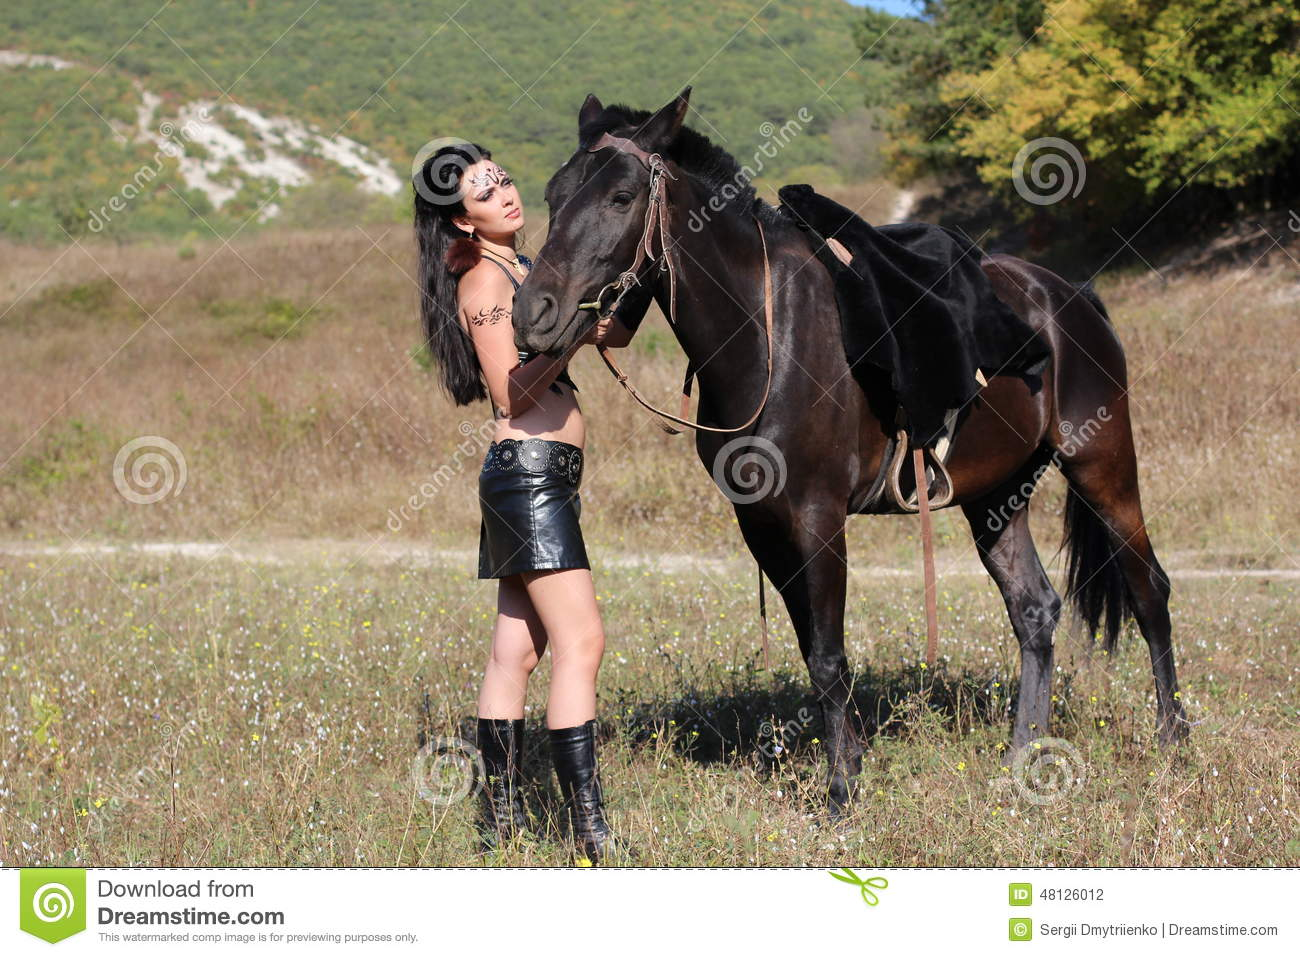 horse cave black girls personals Zip code 42749 is located in southern kentucky and covers a slightly higher than average land area compared to other zip codes in the united states it also has a slightly less than average population density.